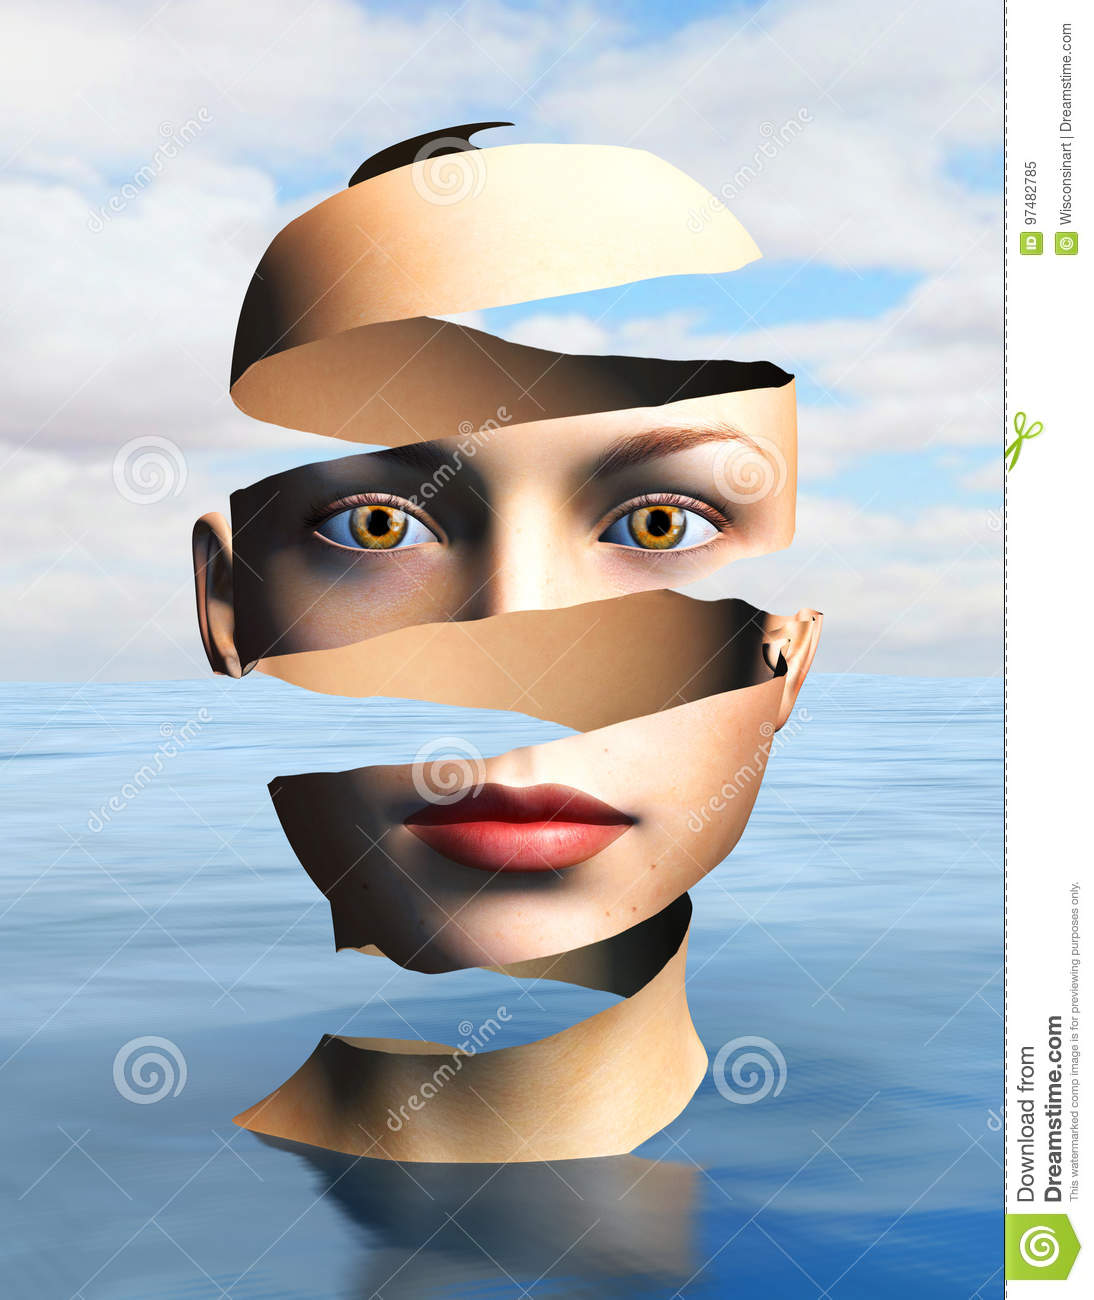 surrealism clipart